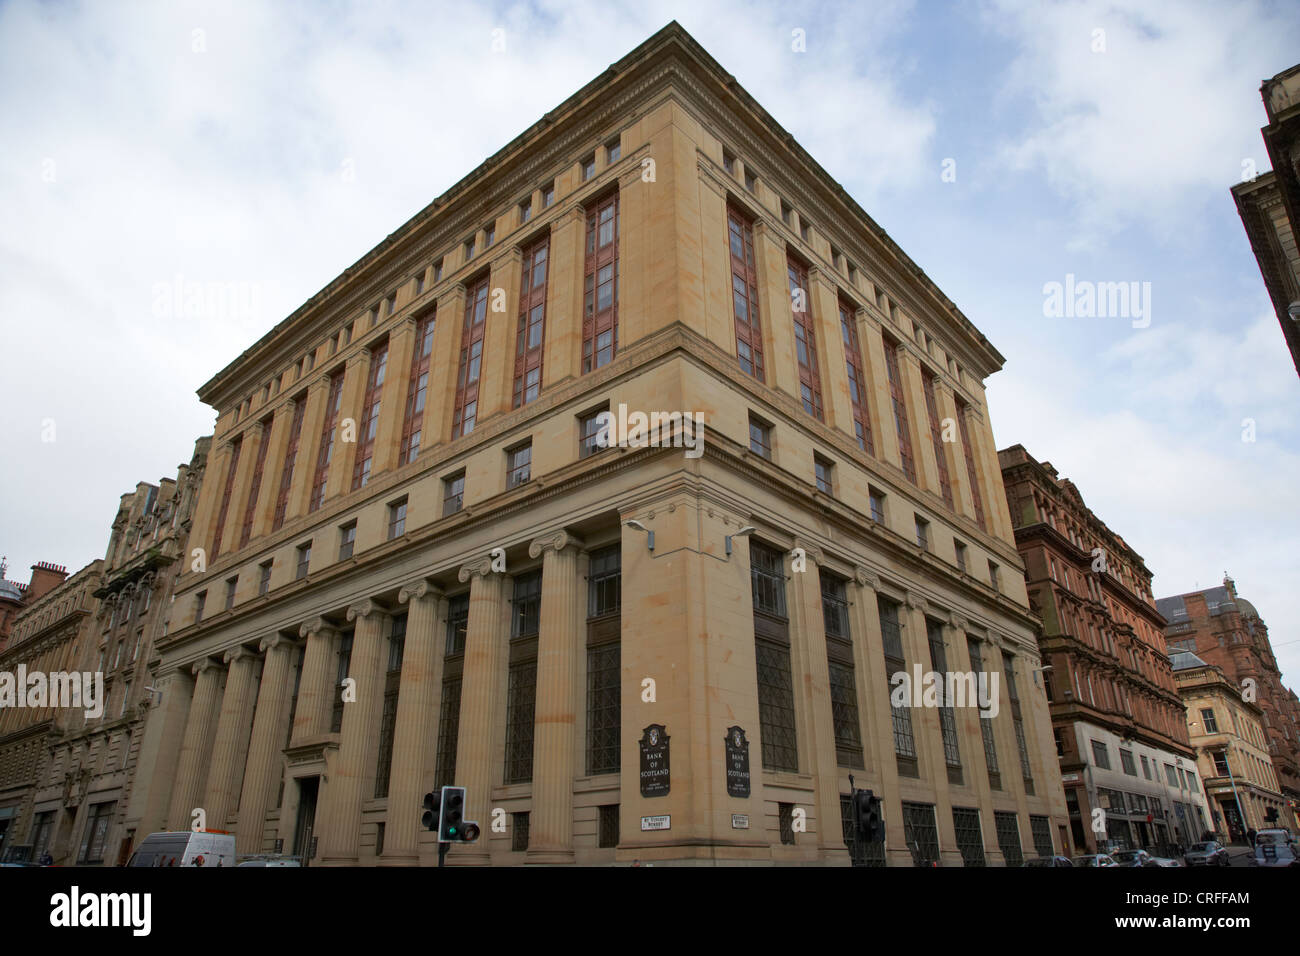 bank of scotland glasgow chief office on the corner of st vincent and renfield street glasgow scotland uk now hbos - Stock Image